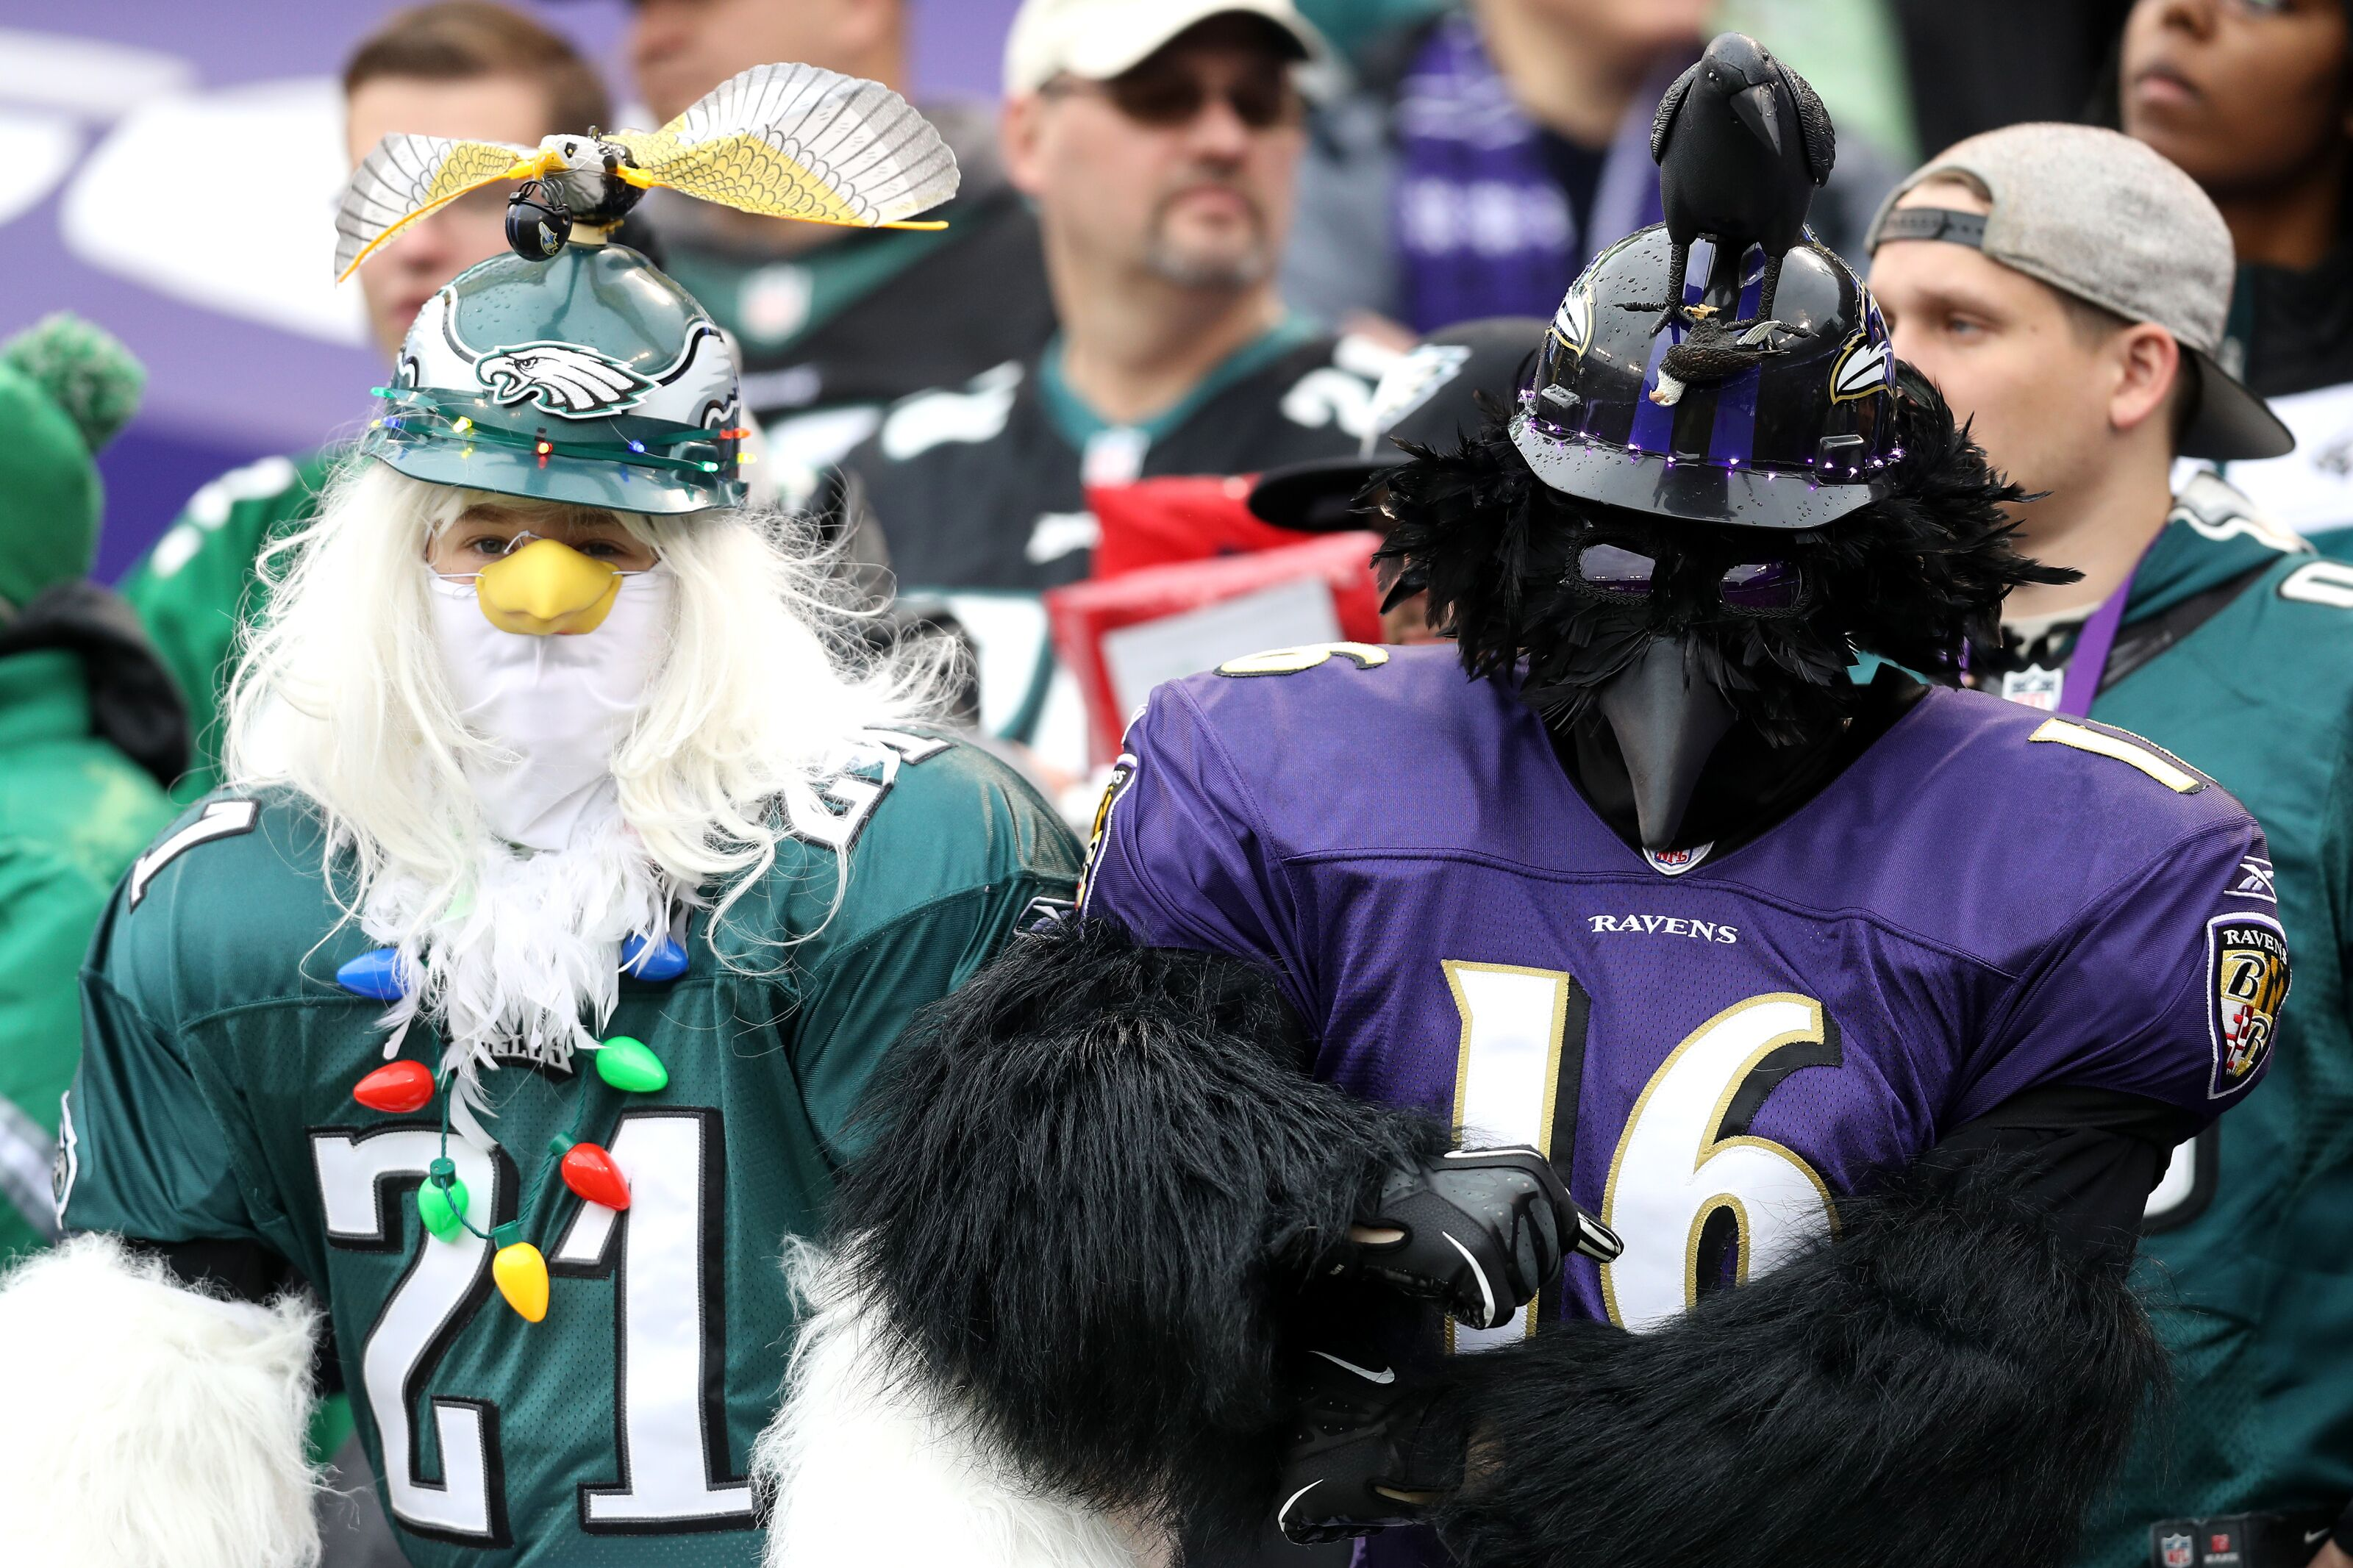 Philadelphia Eagles begin practice sessions with Ravens this week